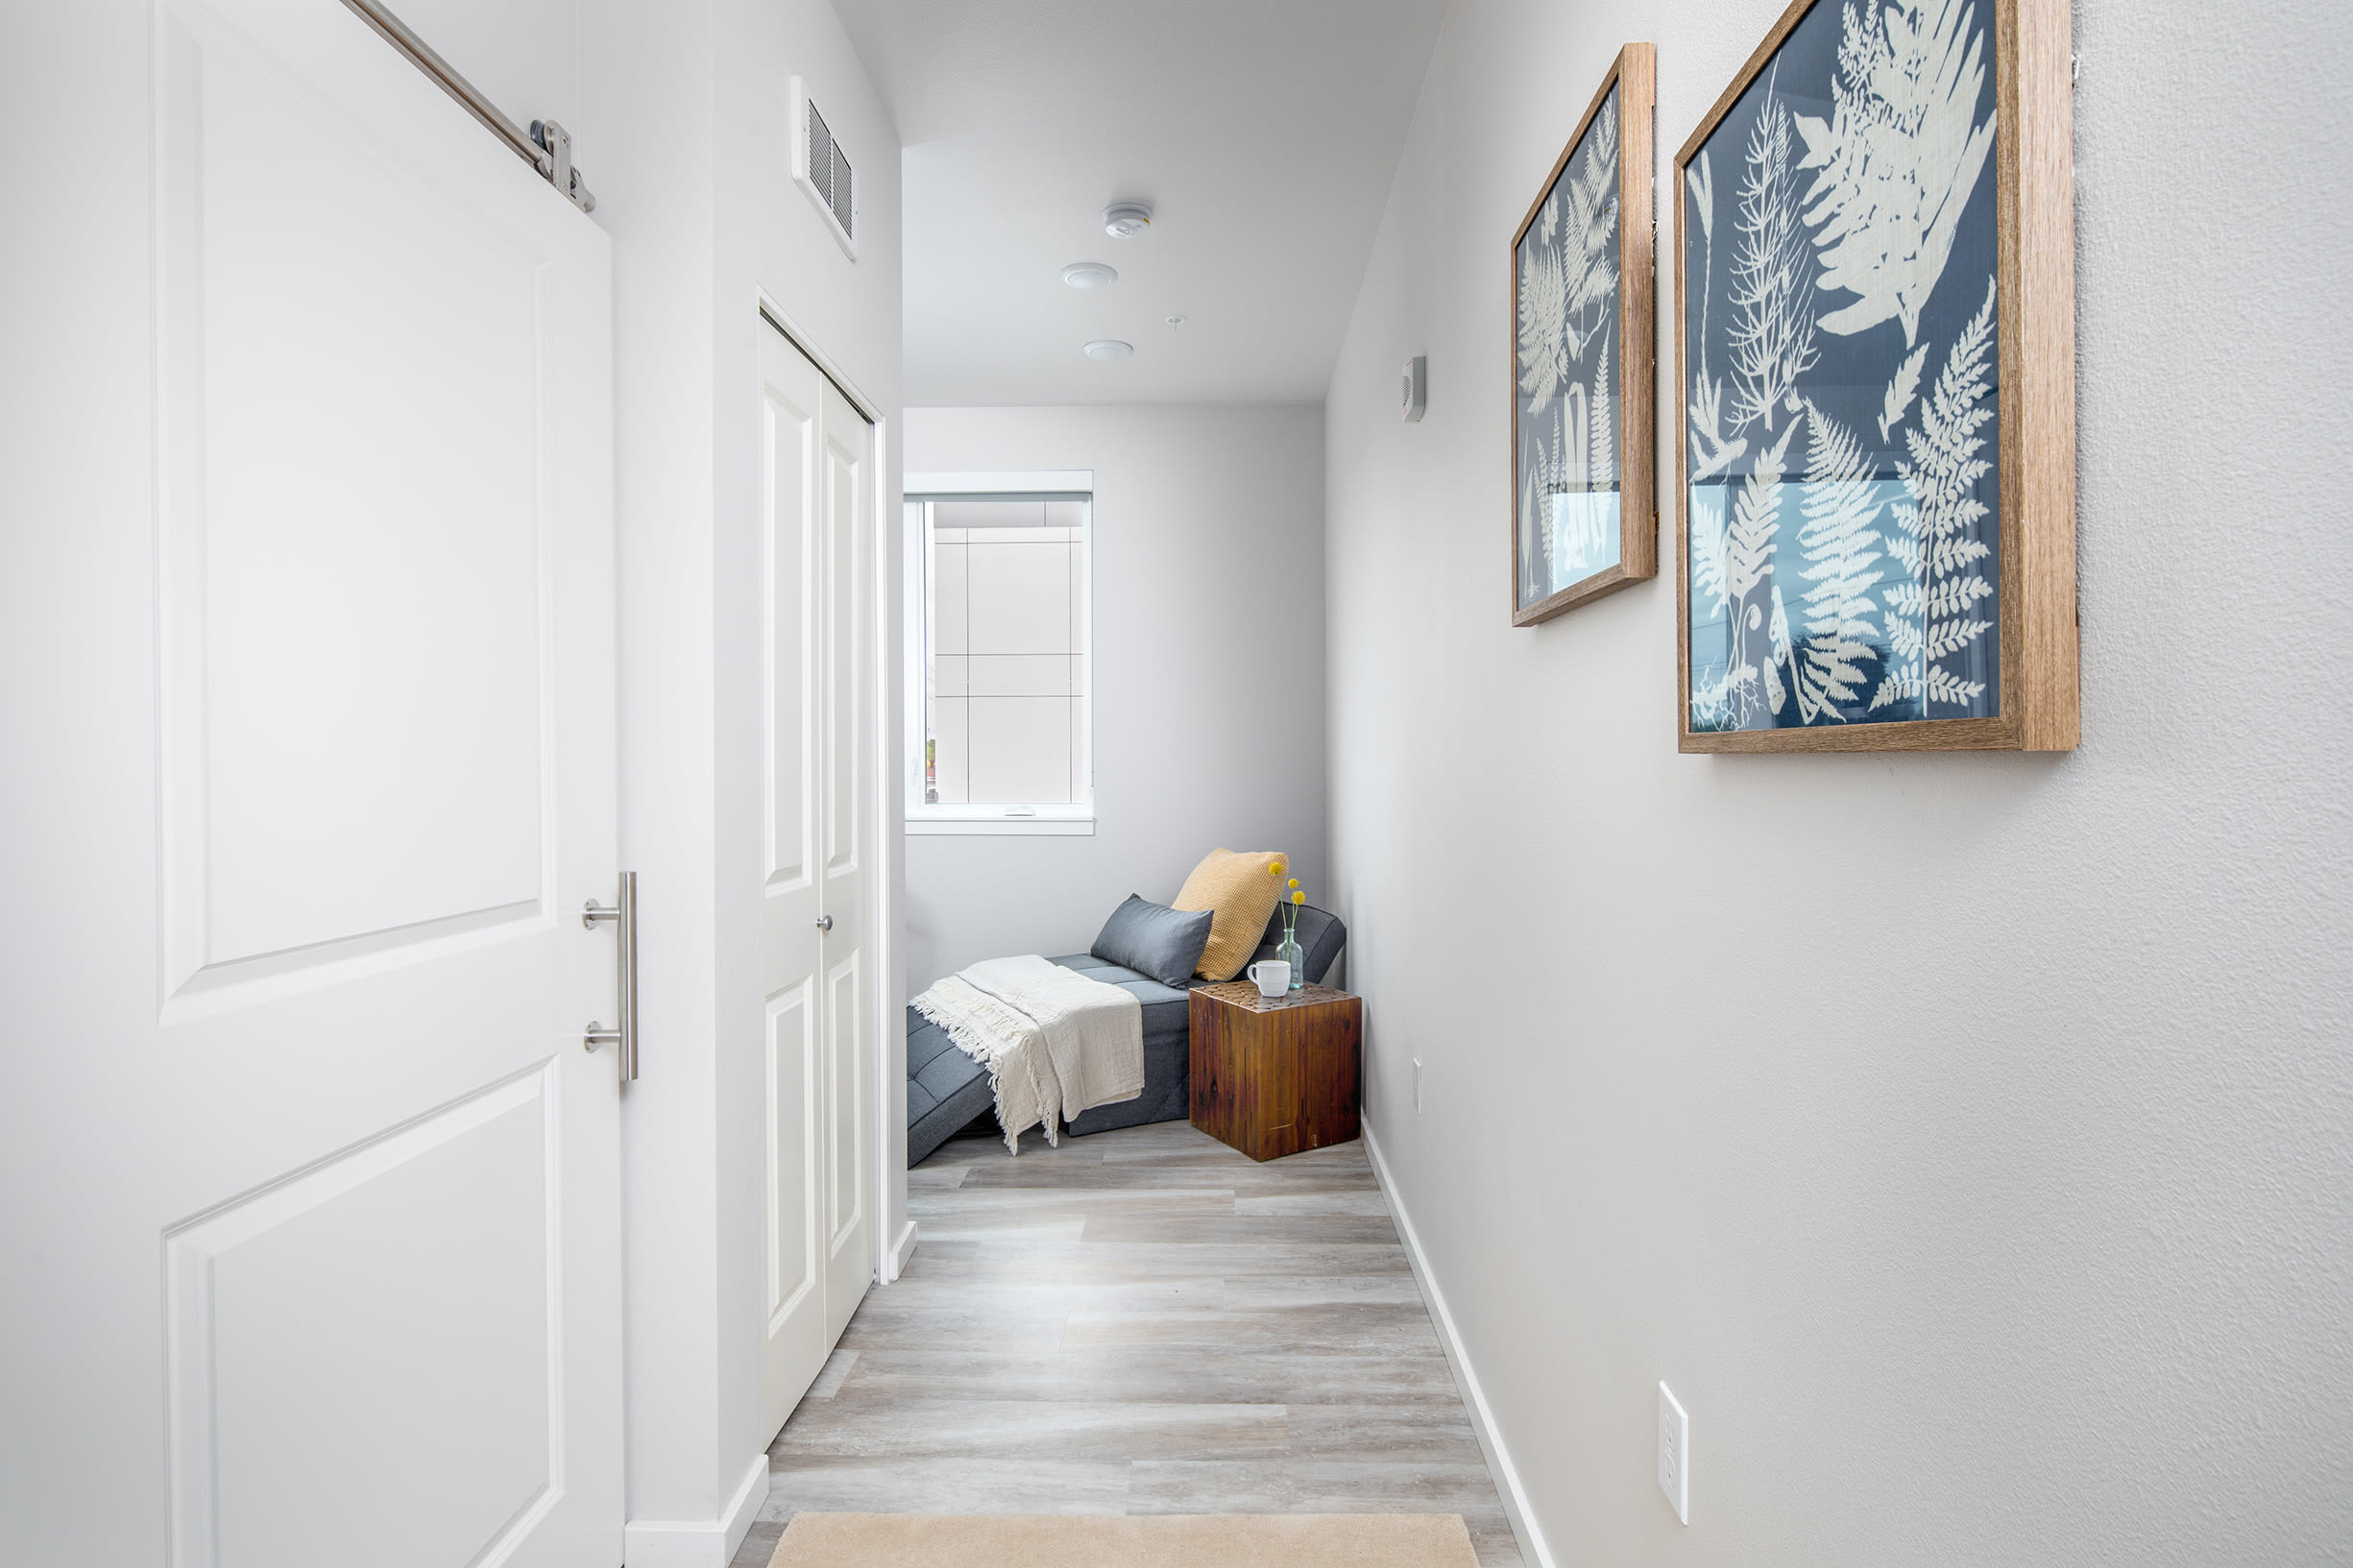 An apartment hallway at Ascend in Portland, OR